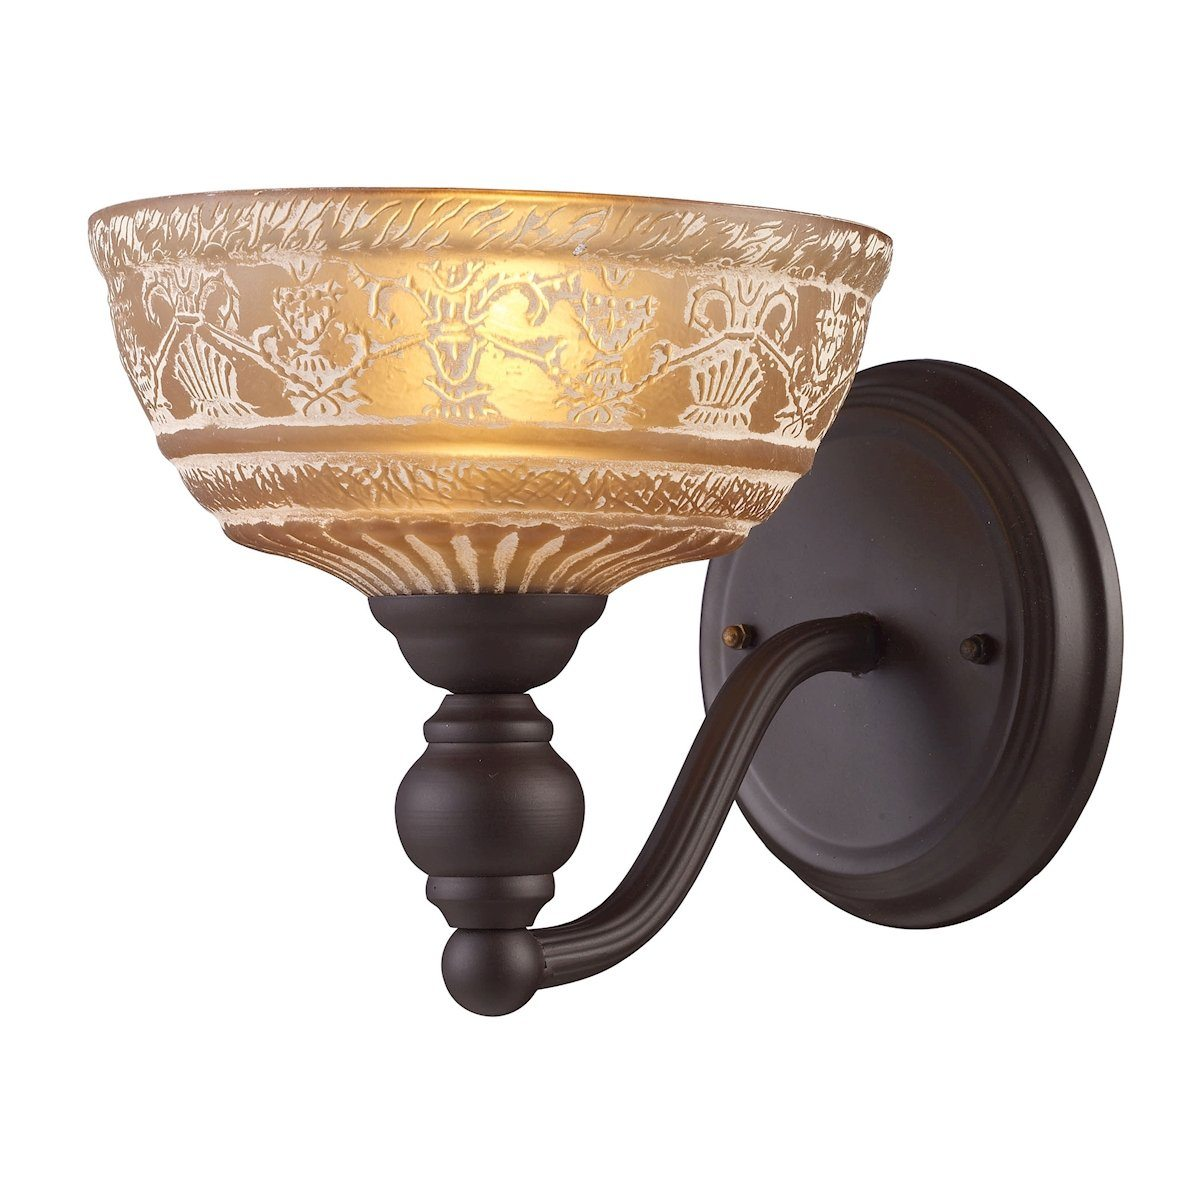 Norwich 1 Light Wall Sconce In Oiled Bronze And Amber Glass Wall Sconce Elk Lighting